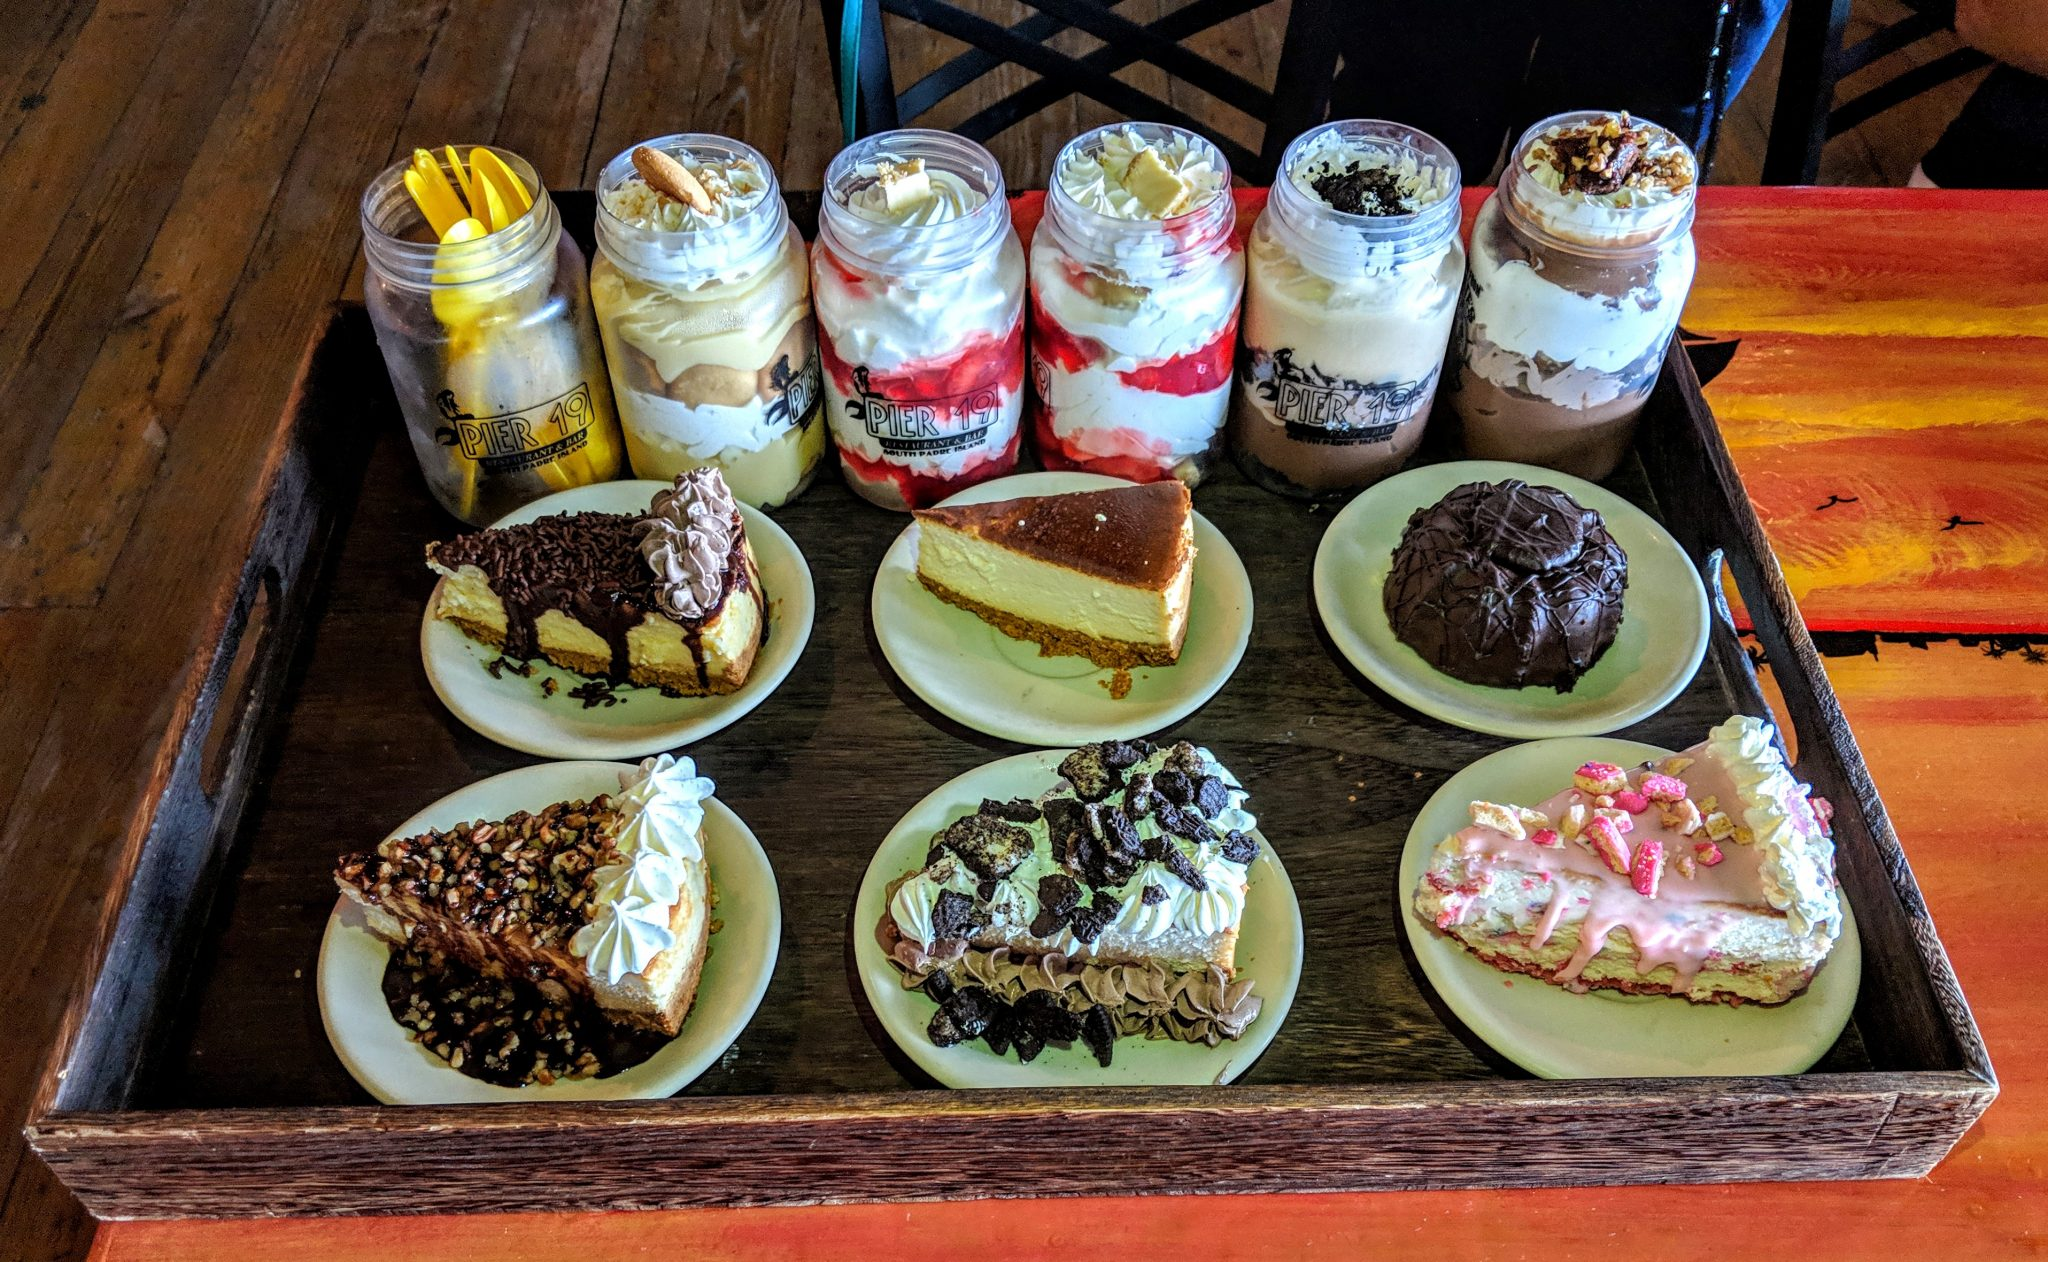 Things to do on South Padre Island Texas - eat dessert!